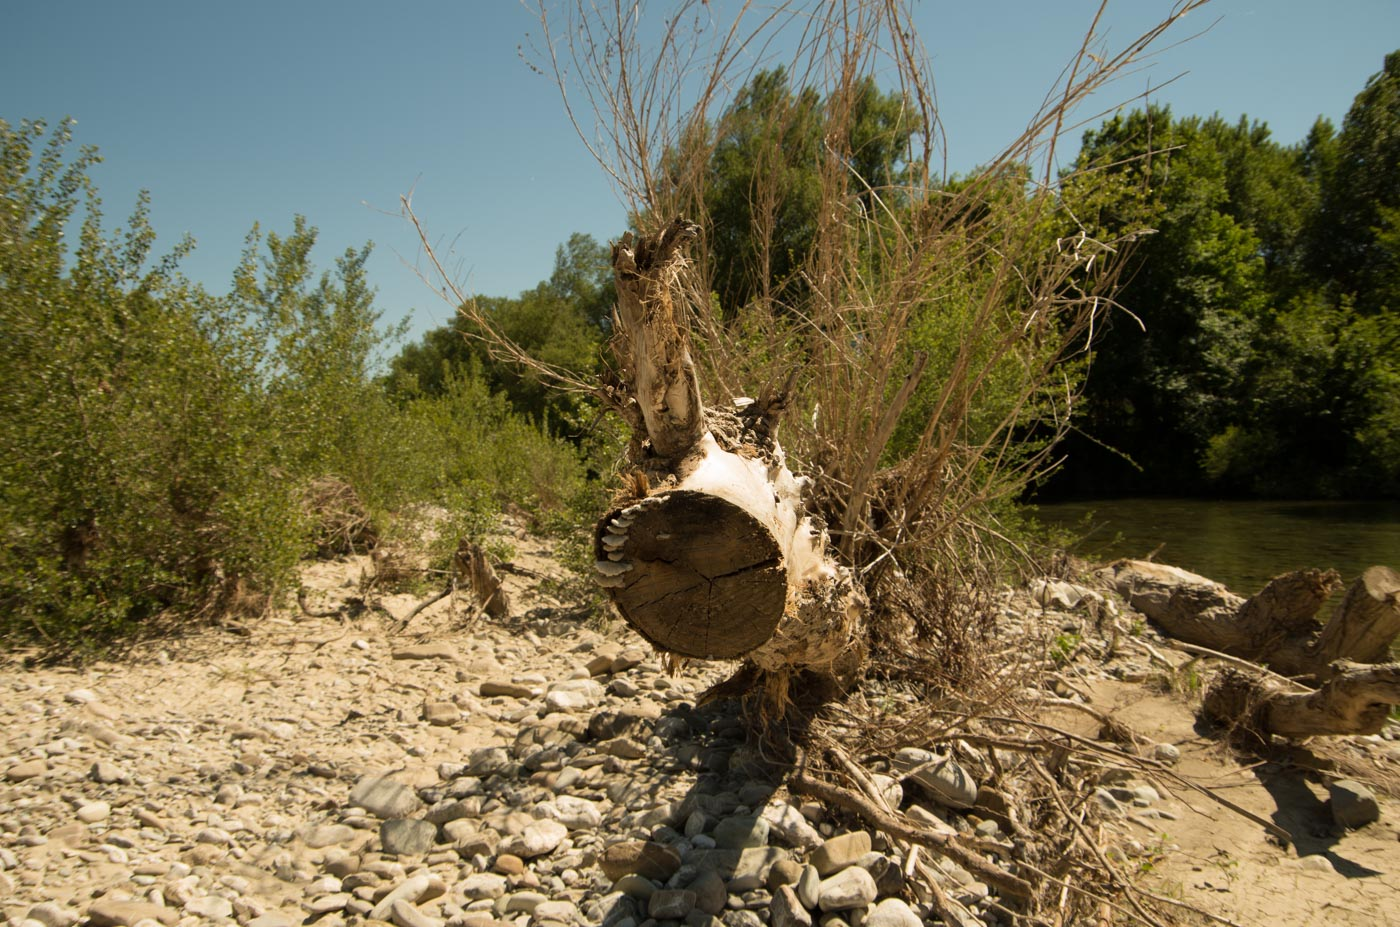 A half-living tree in a partly dried riverbed near the town of Castelcivita.